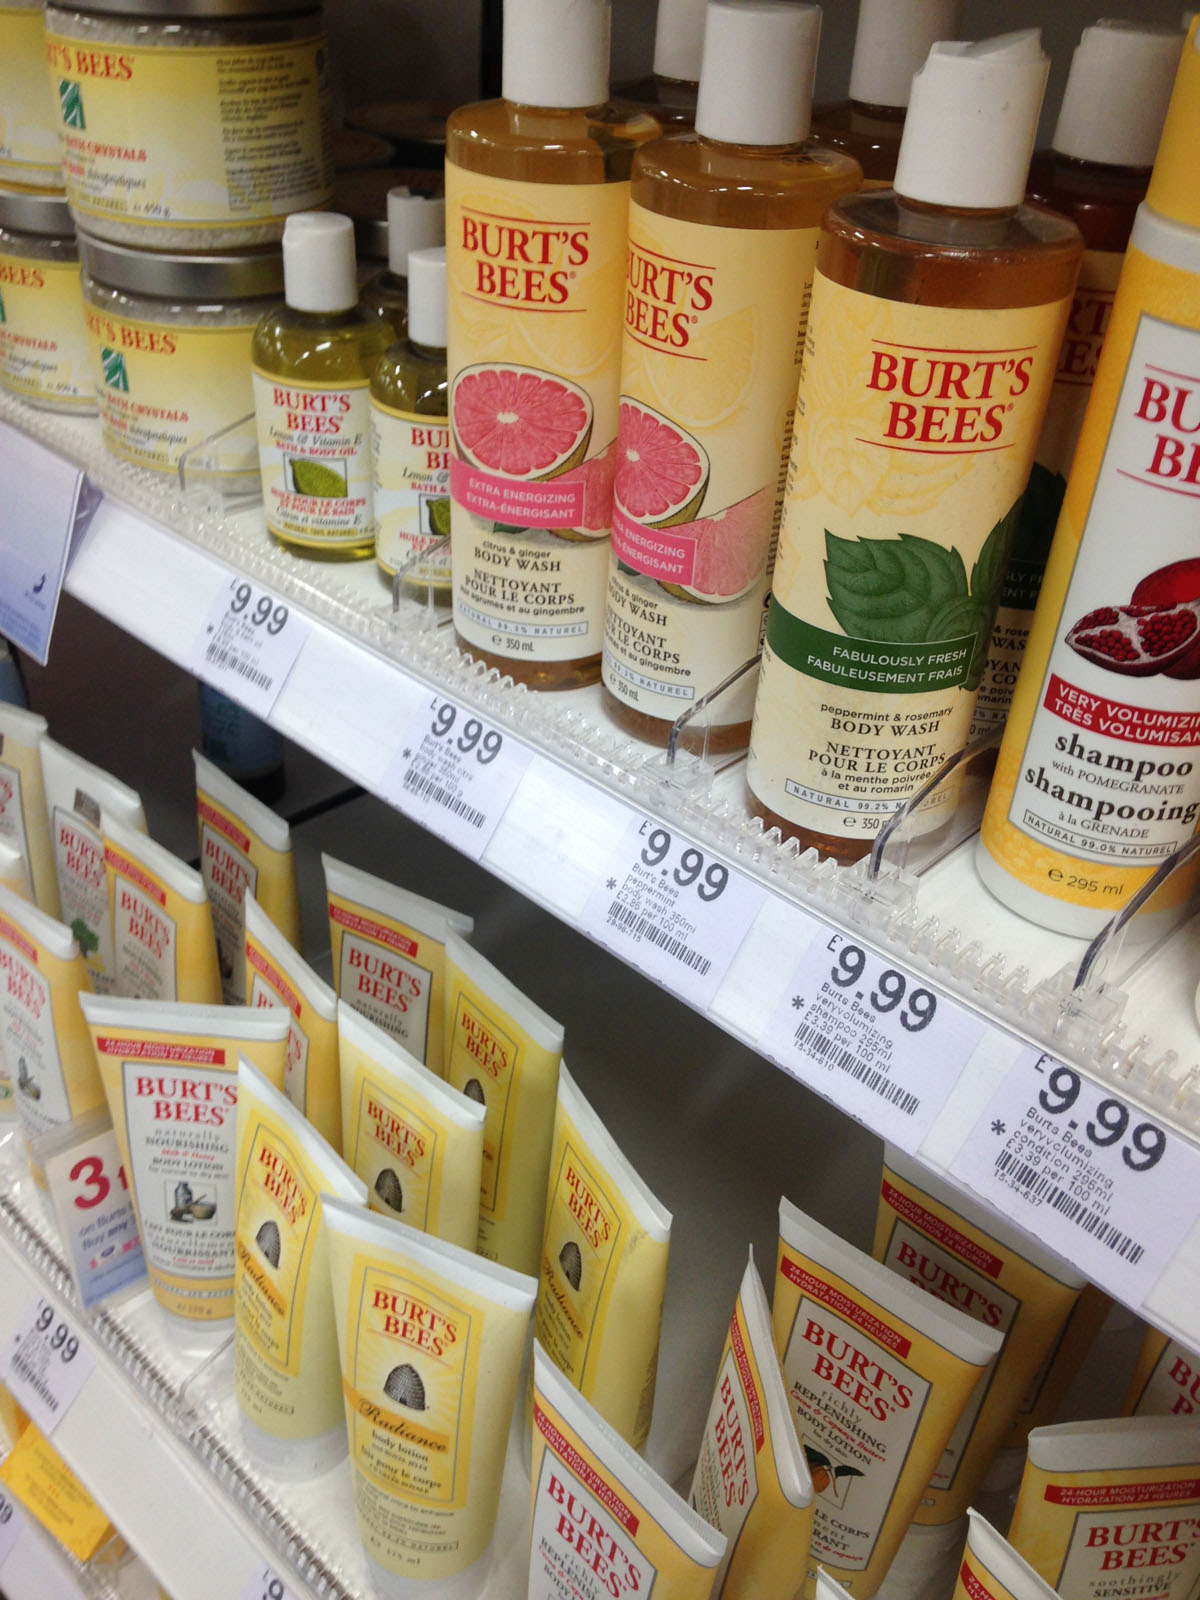 loads of Burts Bees products